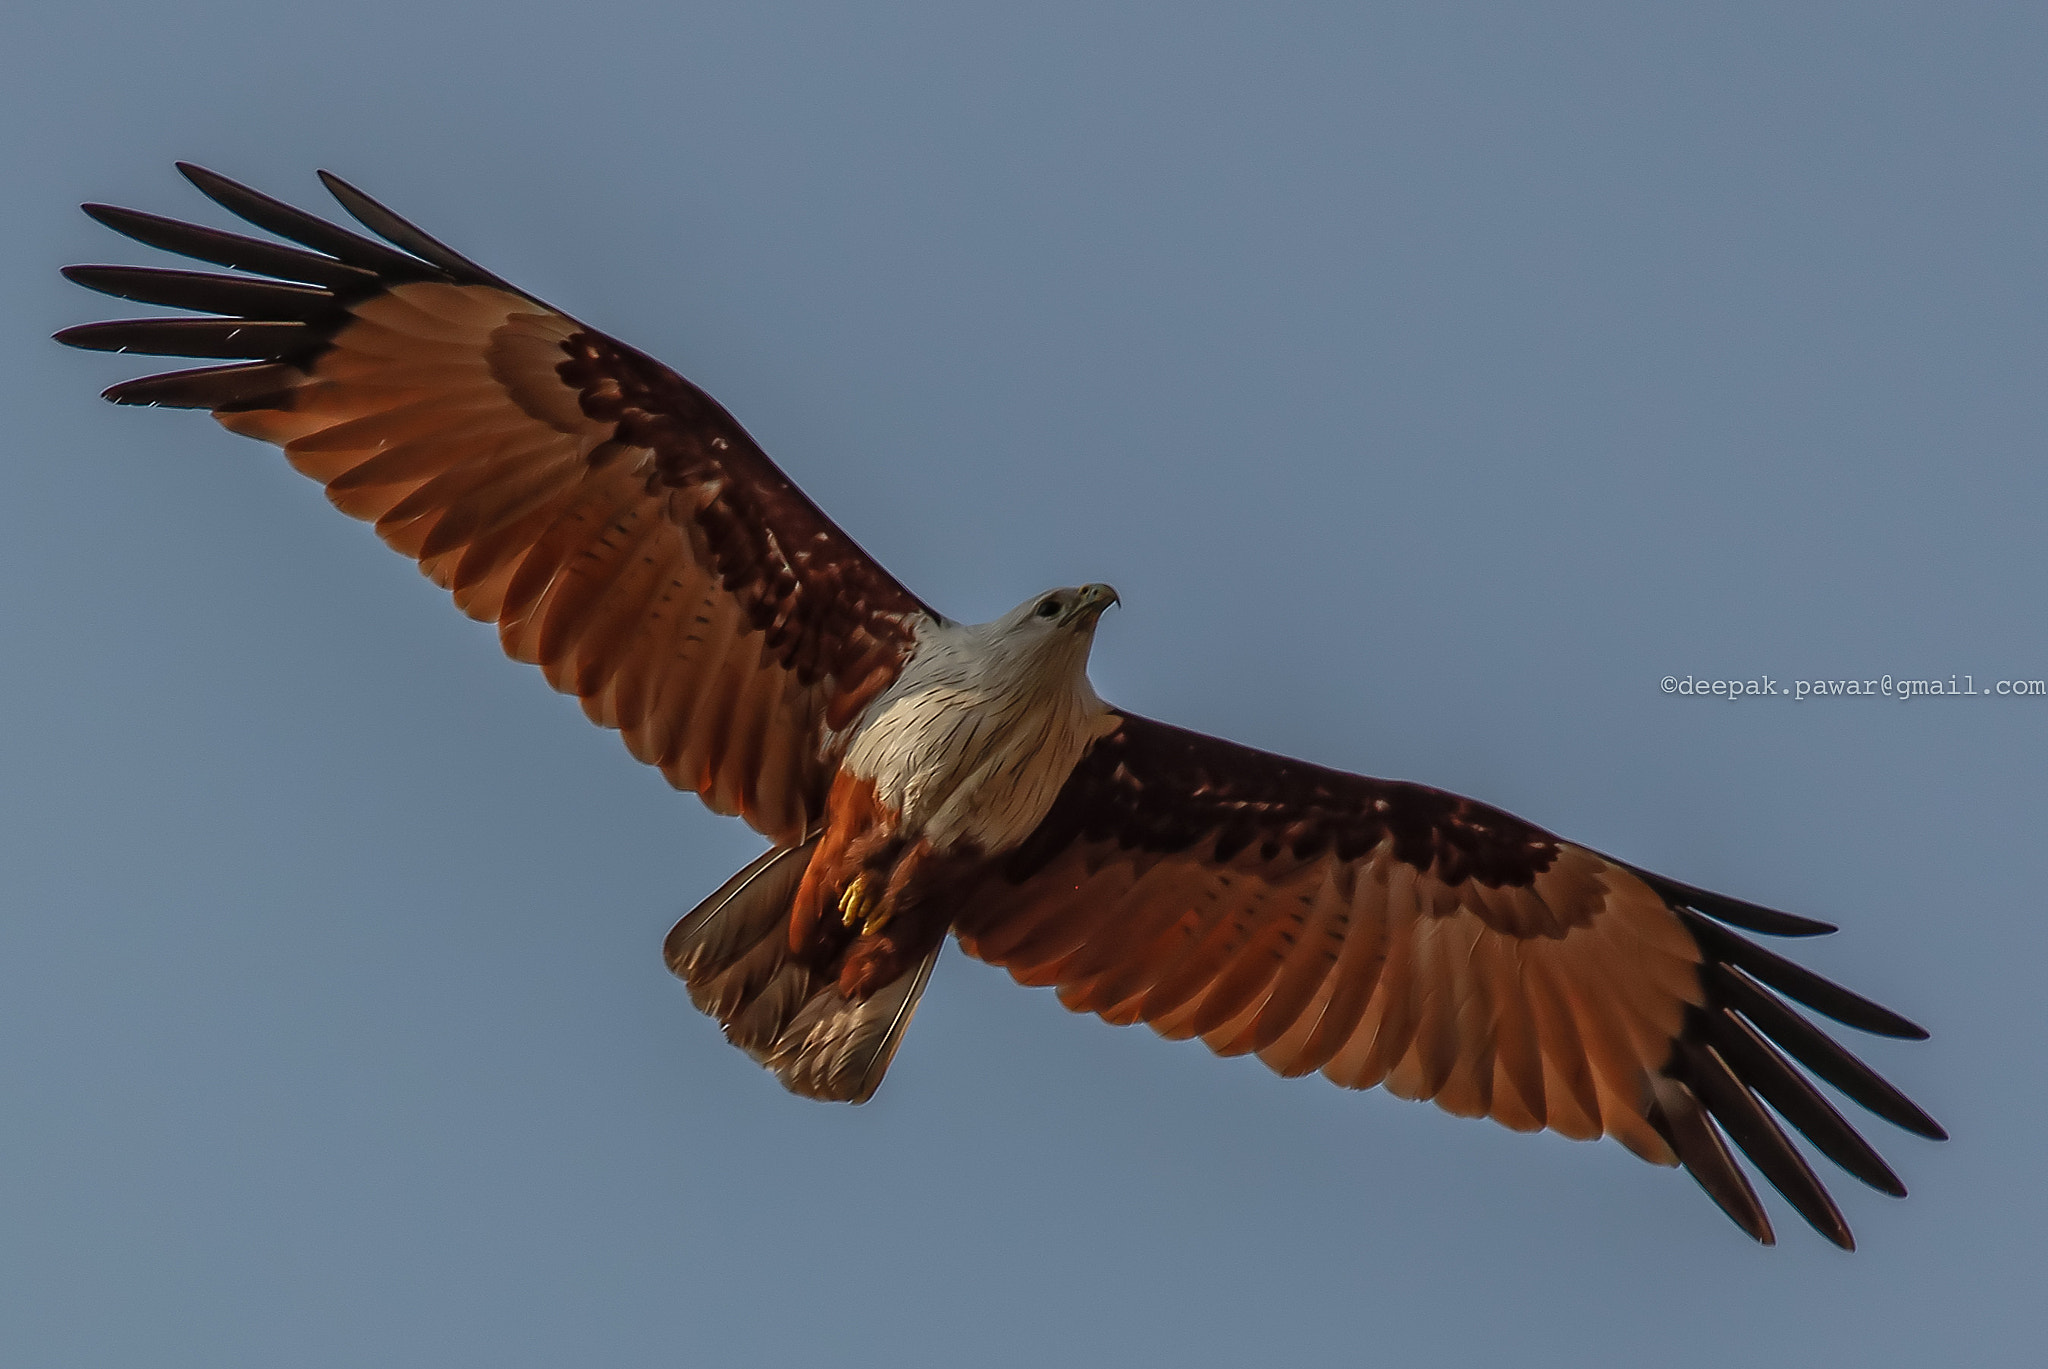 Photograph Brahminy Kite by Deepak Pawar on 500px